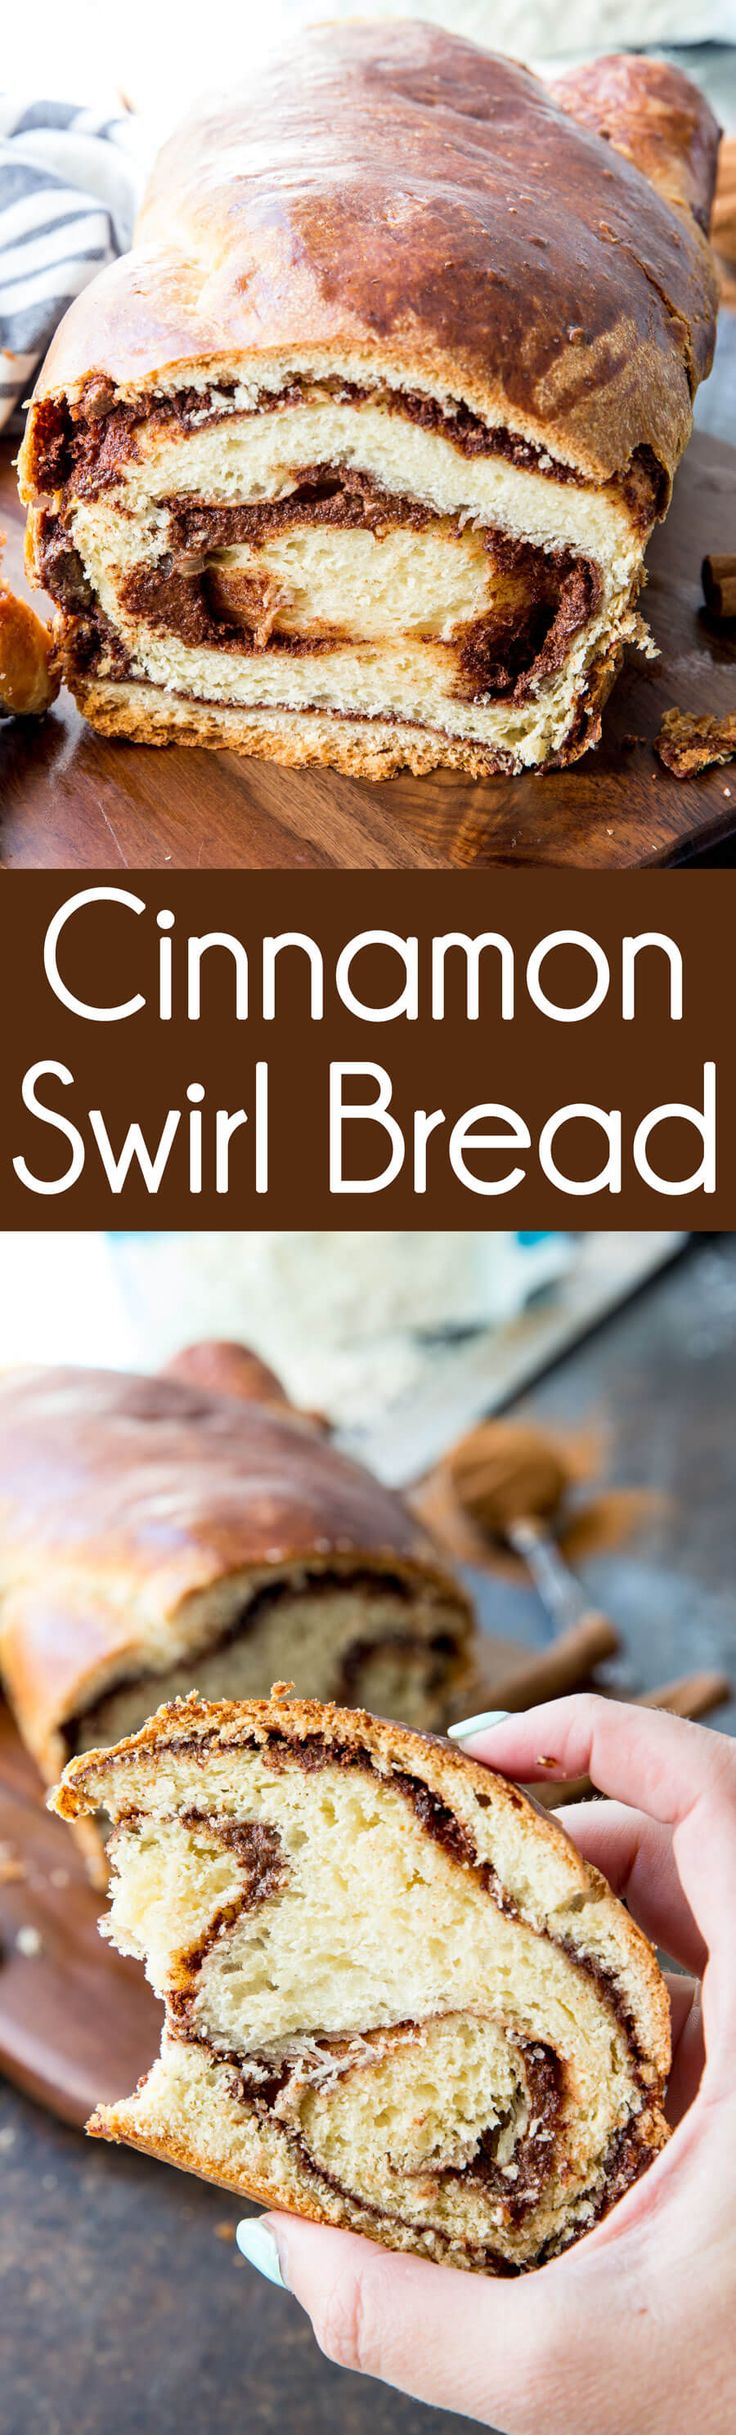 Cinnamon Swirl Bread tastes like it from the bakery and is SO easy to make! #ad